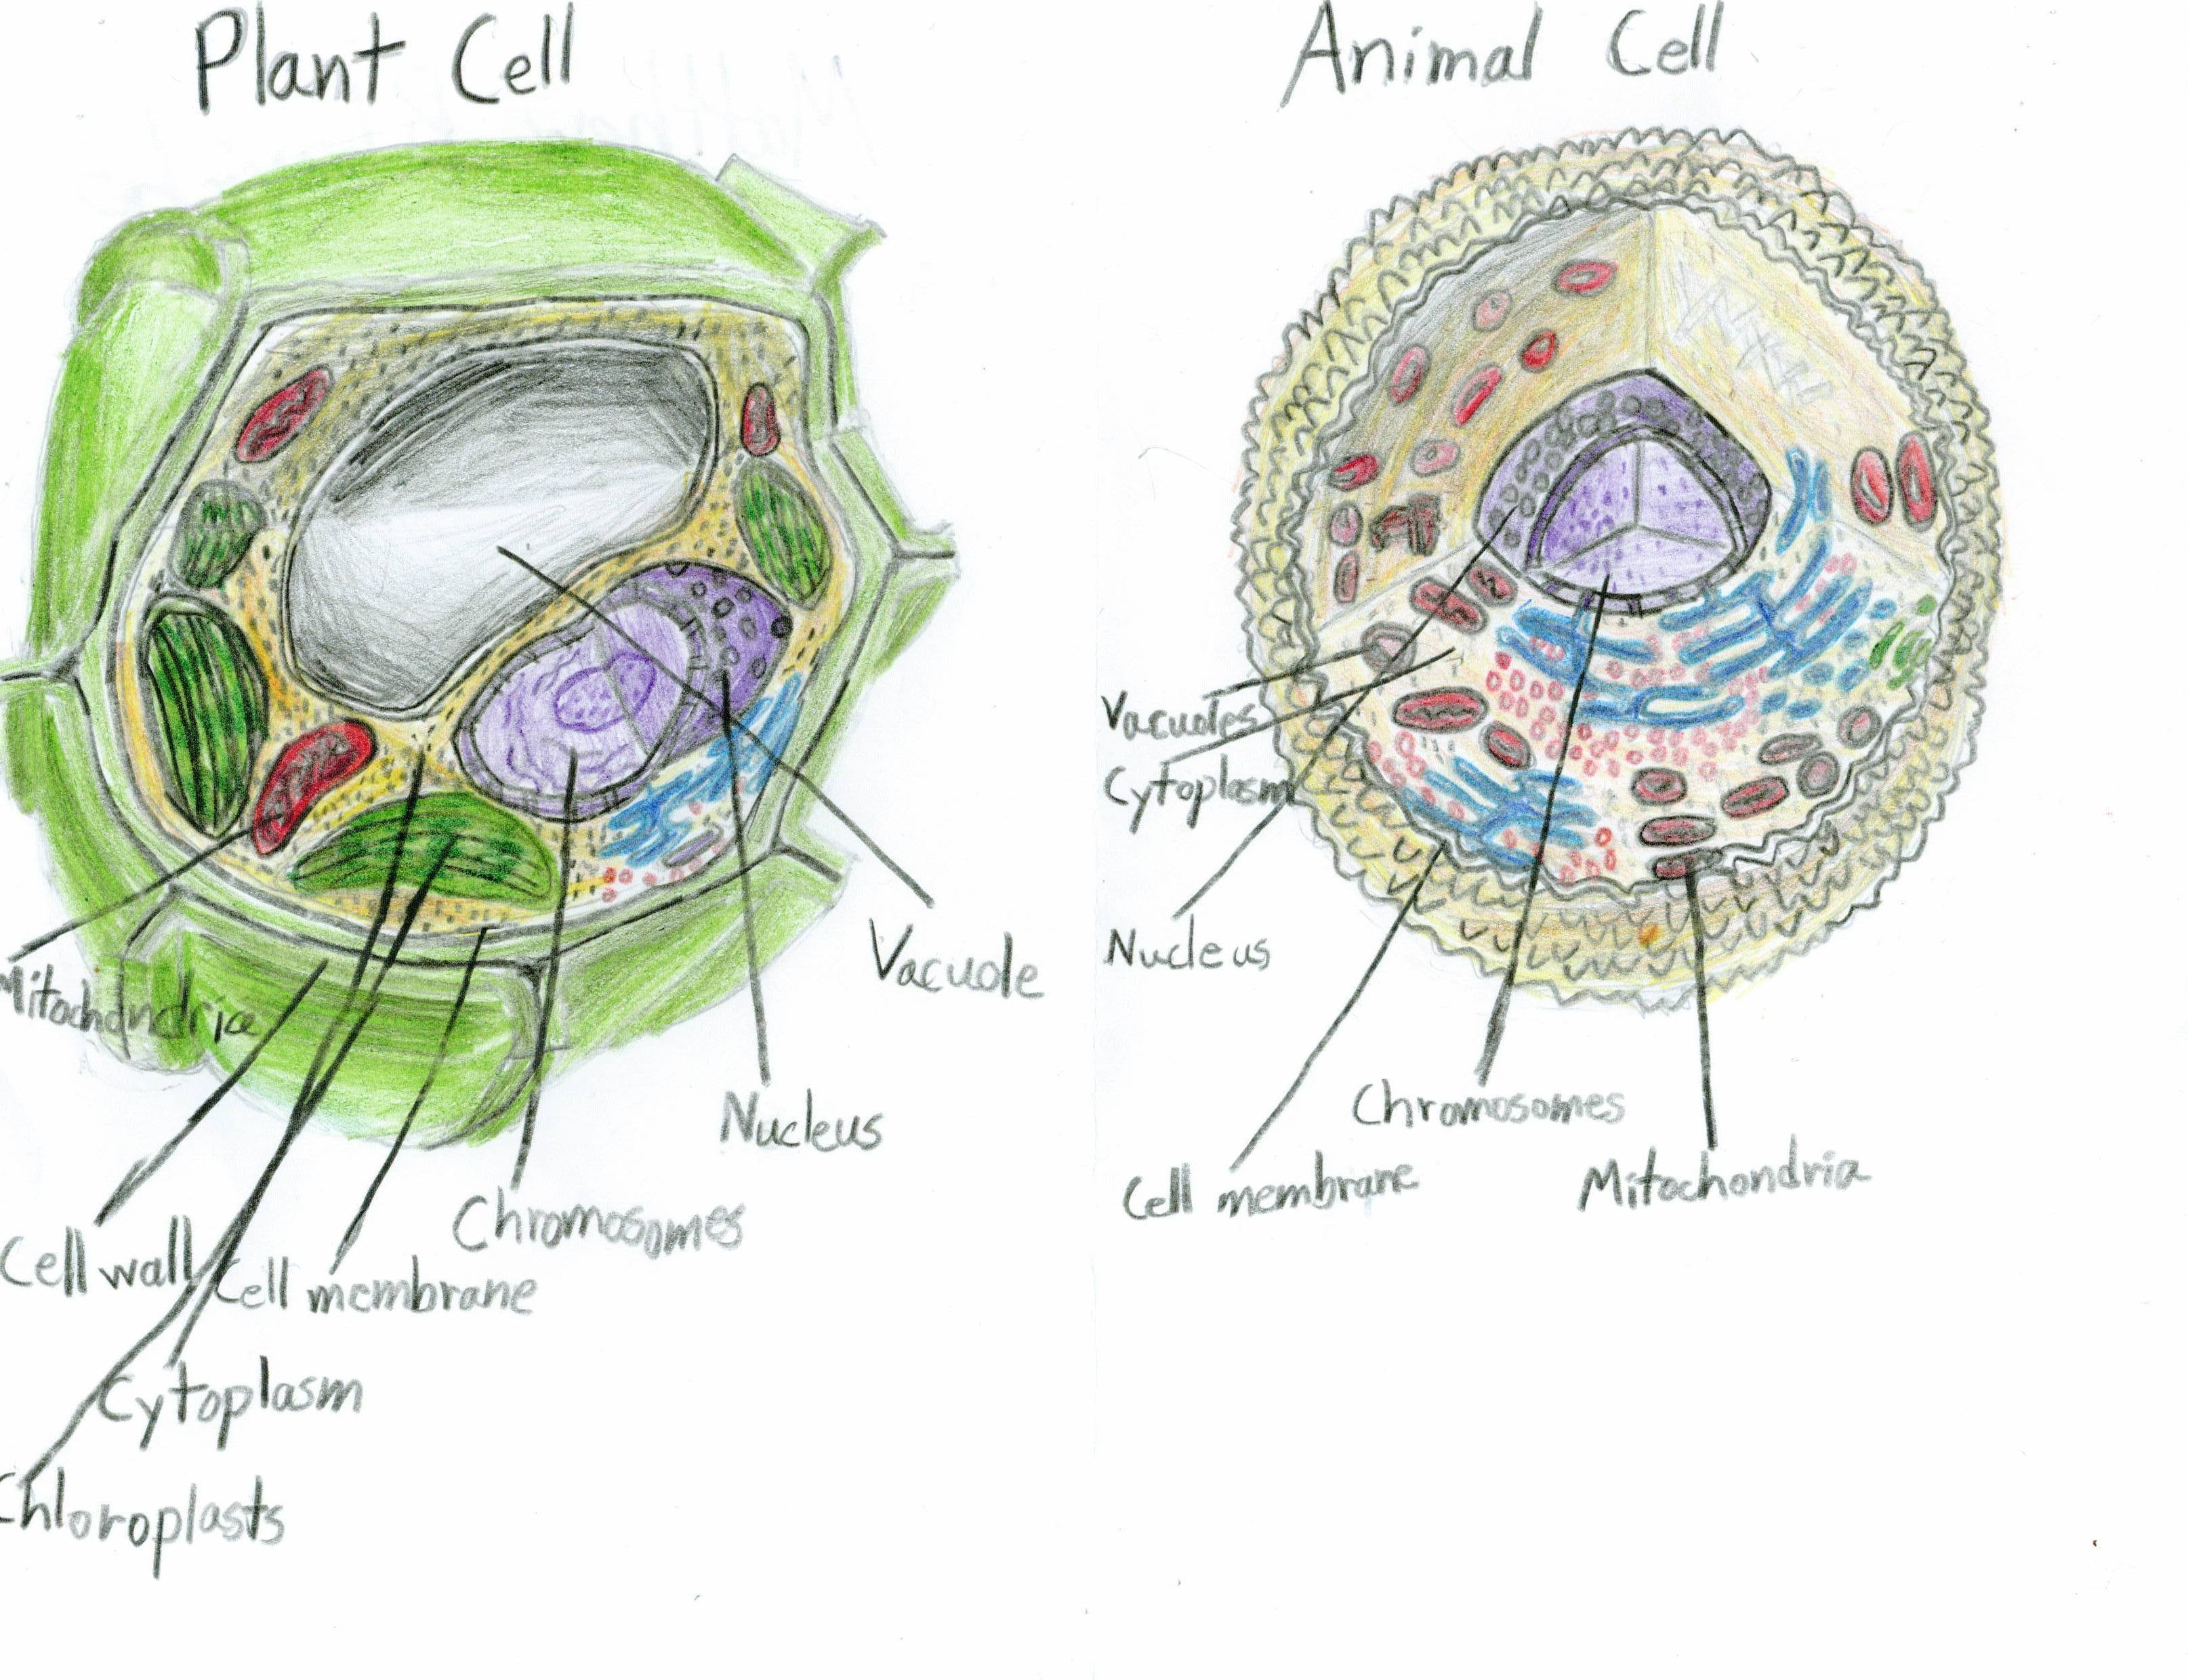 animal cell diagram and labels suzuki cultus car electrical wiring 1000 43 images about med term on pinterest the skin